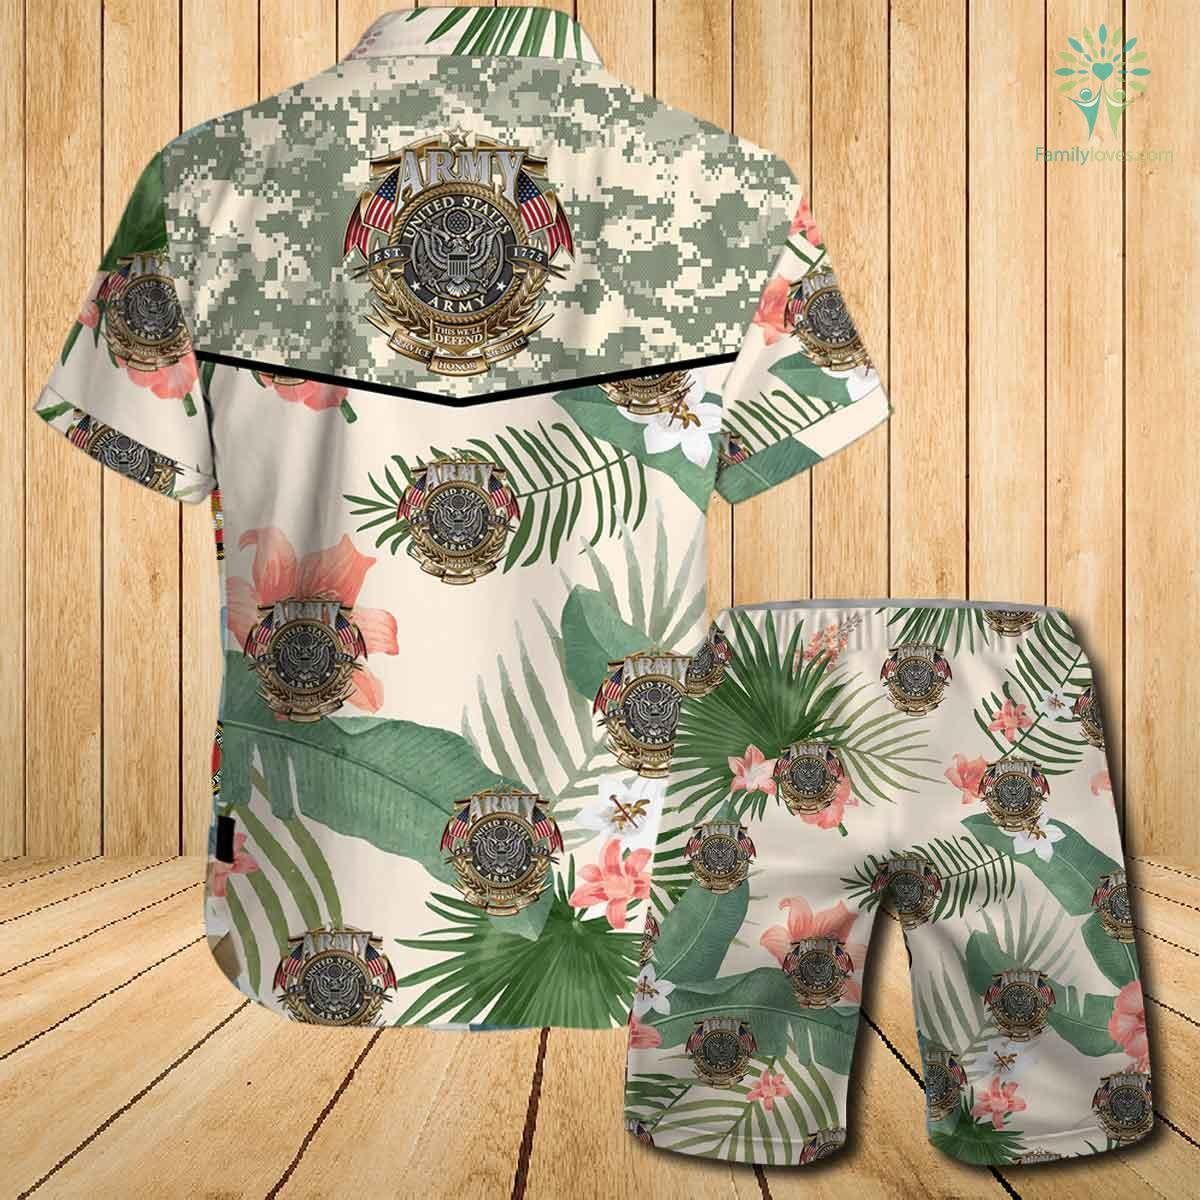 US army this we'll defend since 1775 honor service sacrifice all over printed hawaiian shirt 1